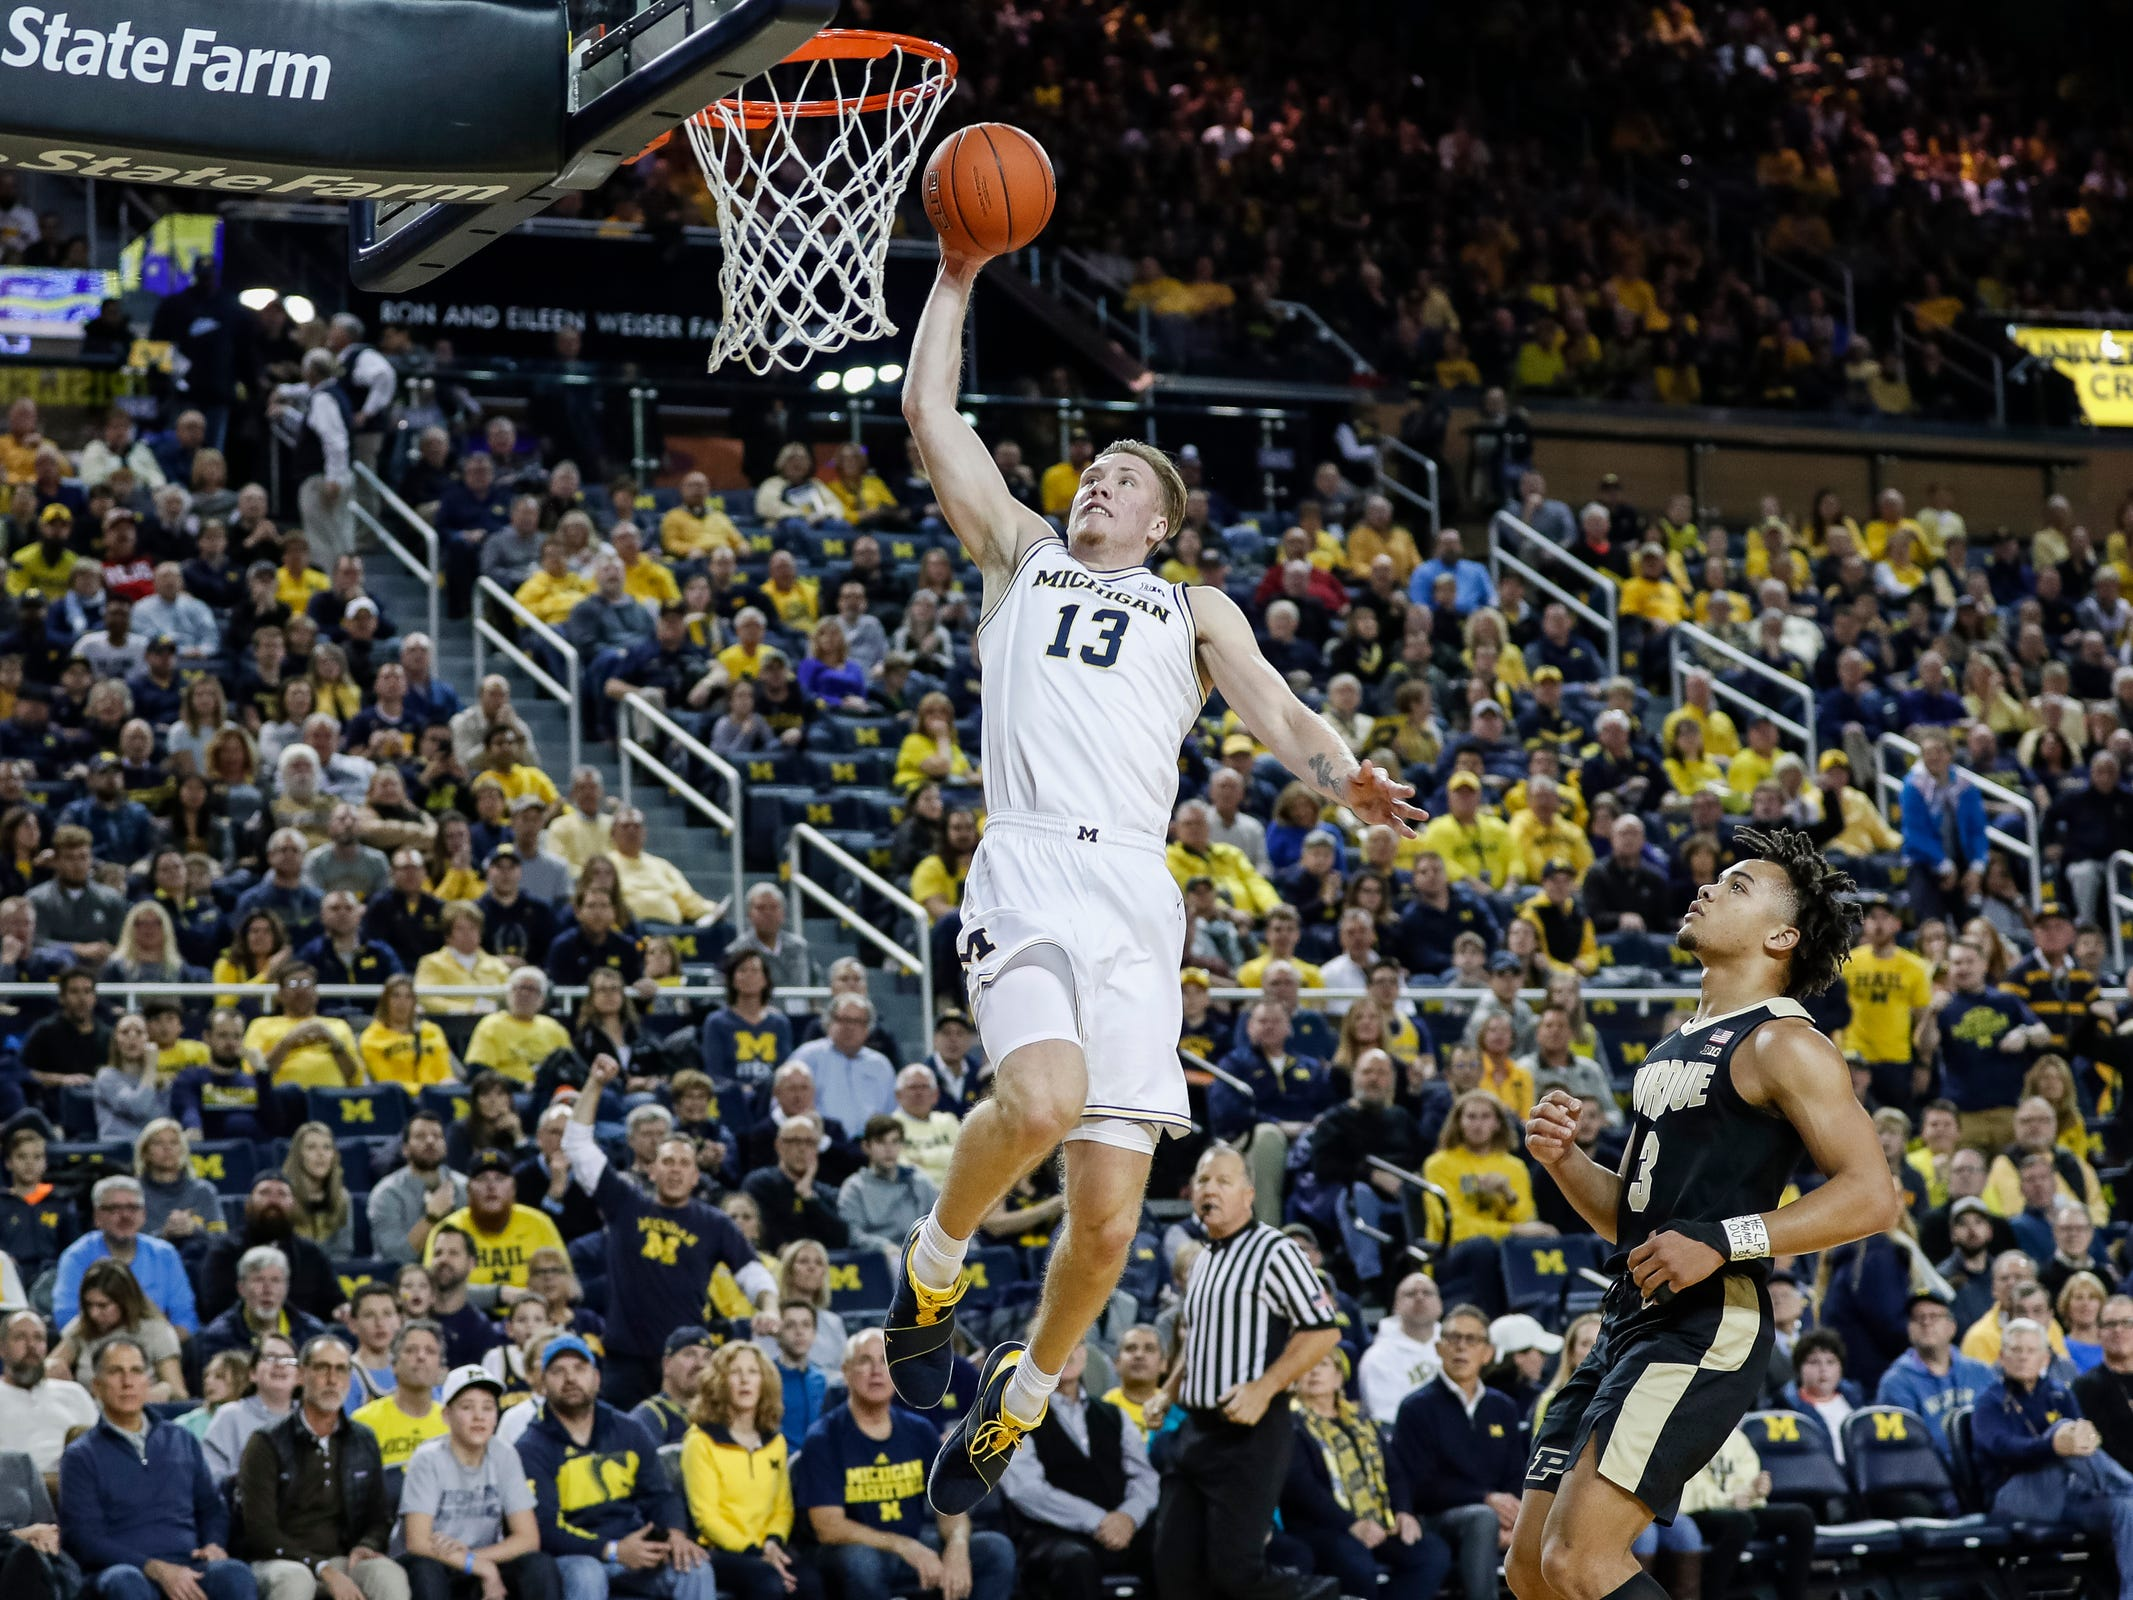 Michigan forward Ignas Brazdeikis (13) makes a dunk during the first half against Purdue at Crisler Center on Saturday, Dec. 1, 2018.